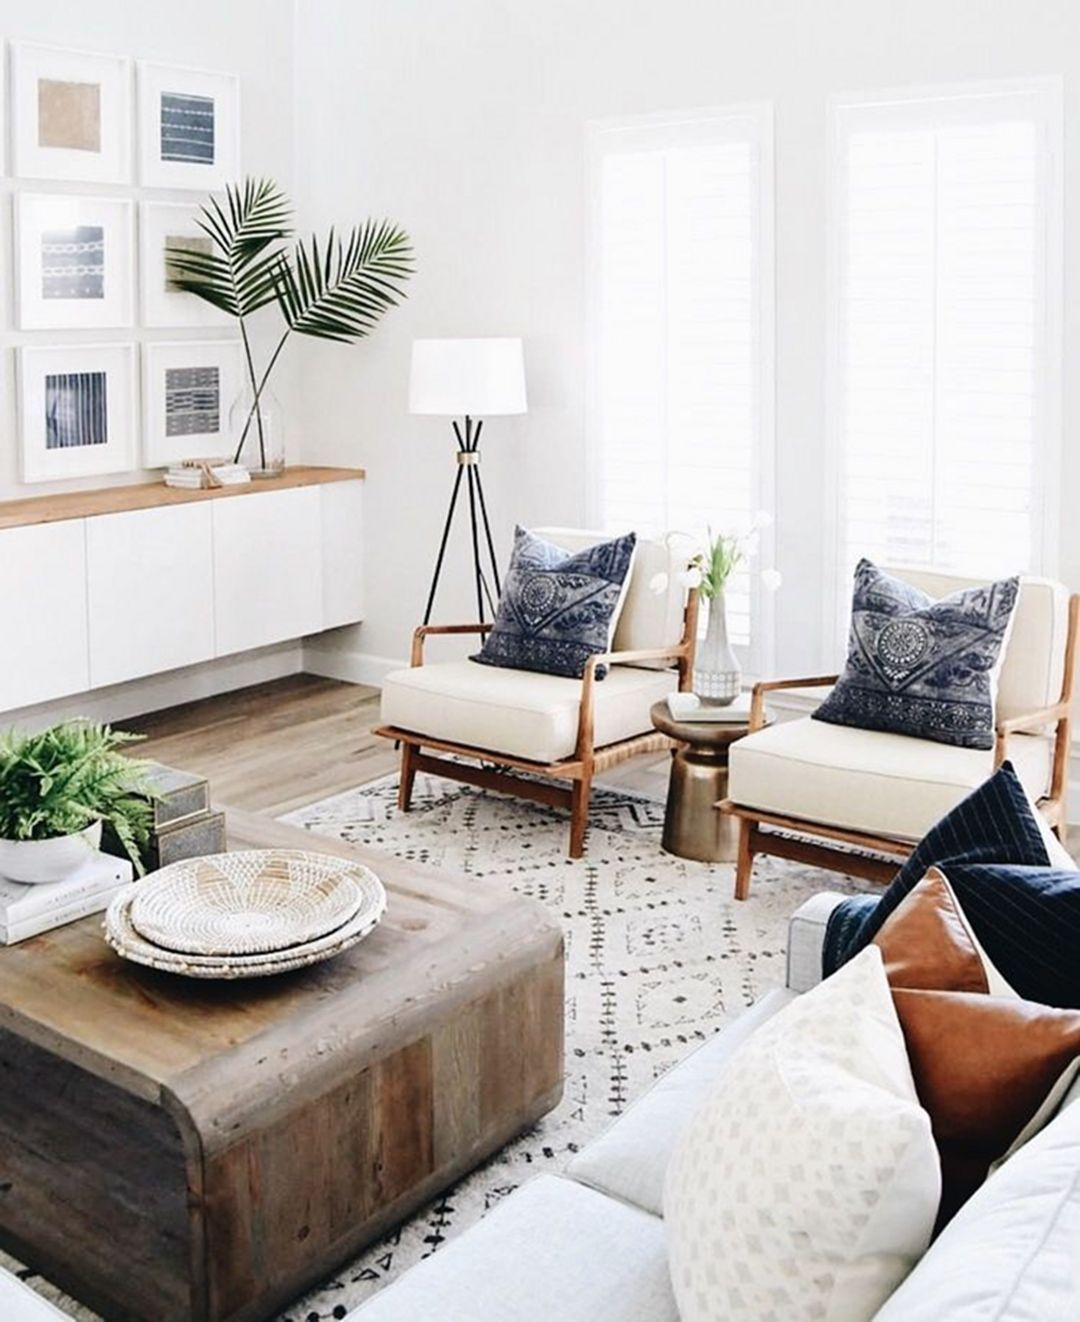 Small Living Room Ideas For More Seating And Style: 13 Most Popular Small Modern Living Room Design Ideas To